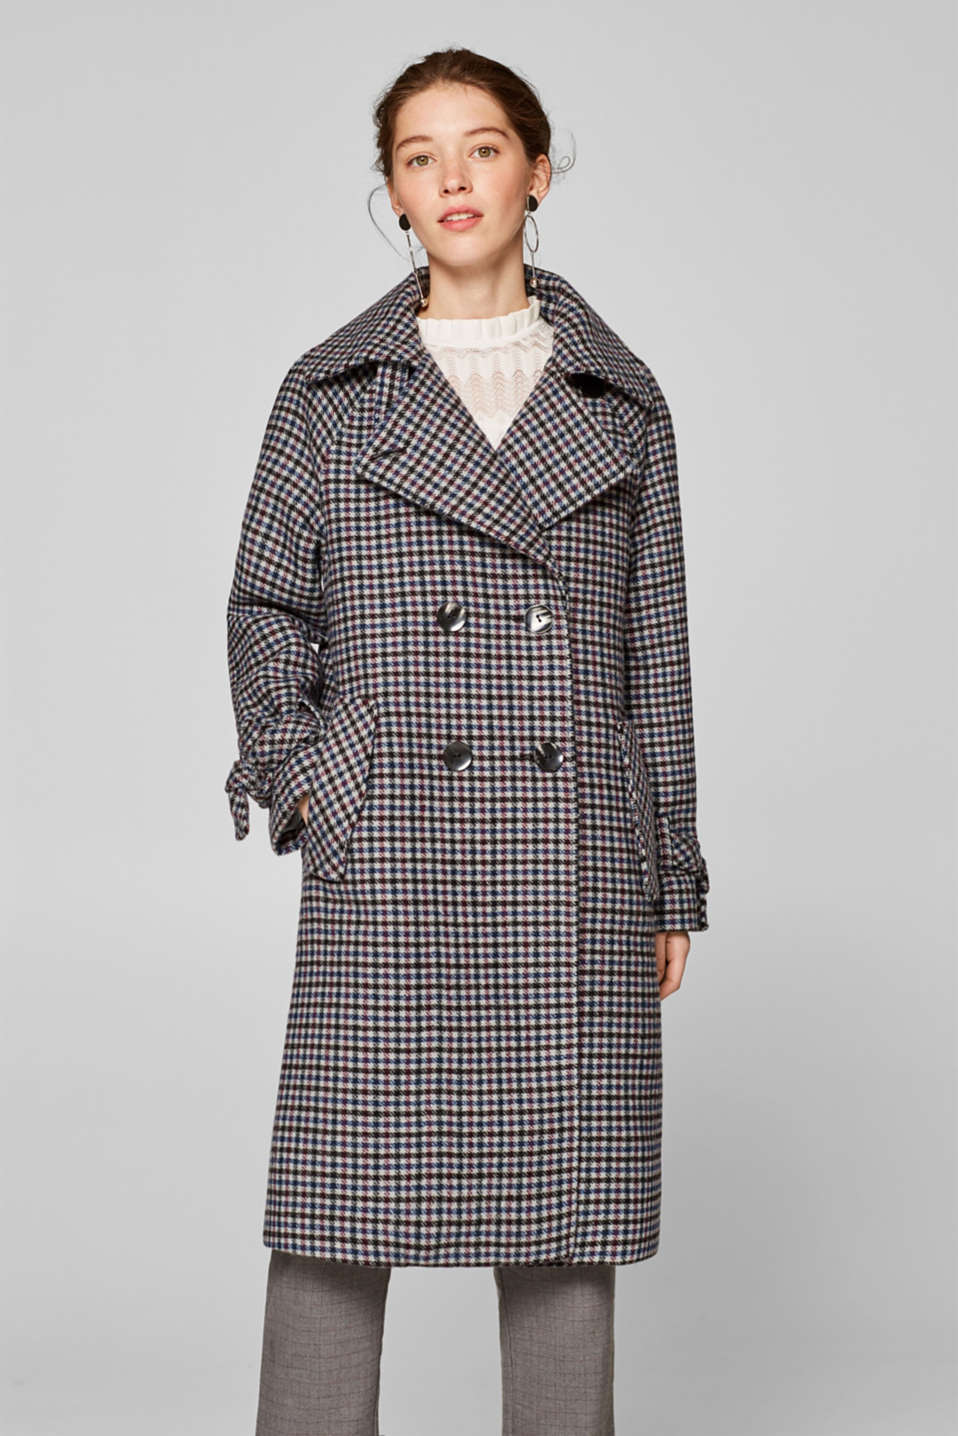 Esprit - Double-breasted, checked coat in blended wool